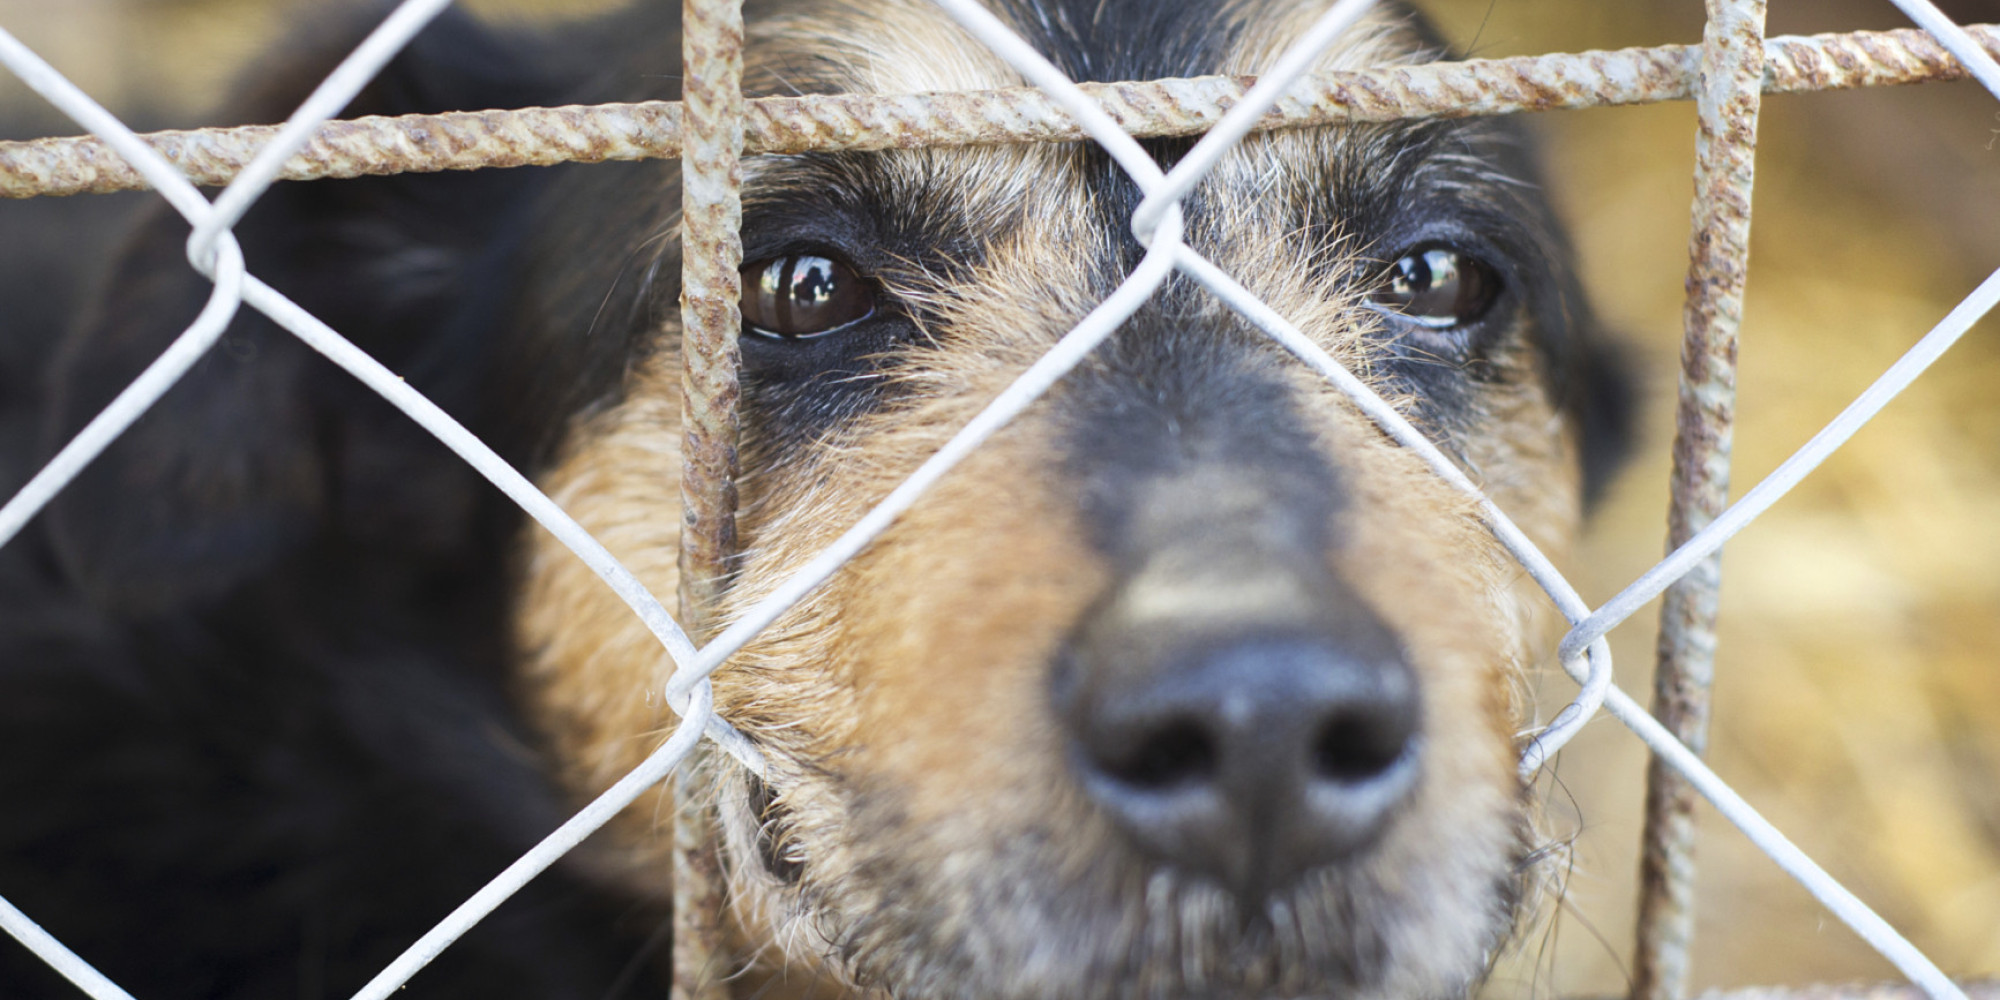 peta euthanized a lot of animals at its shelter in 2014 and no